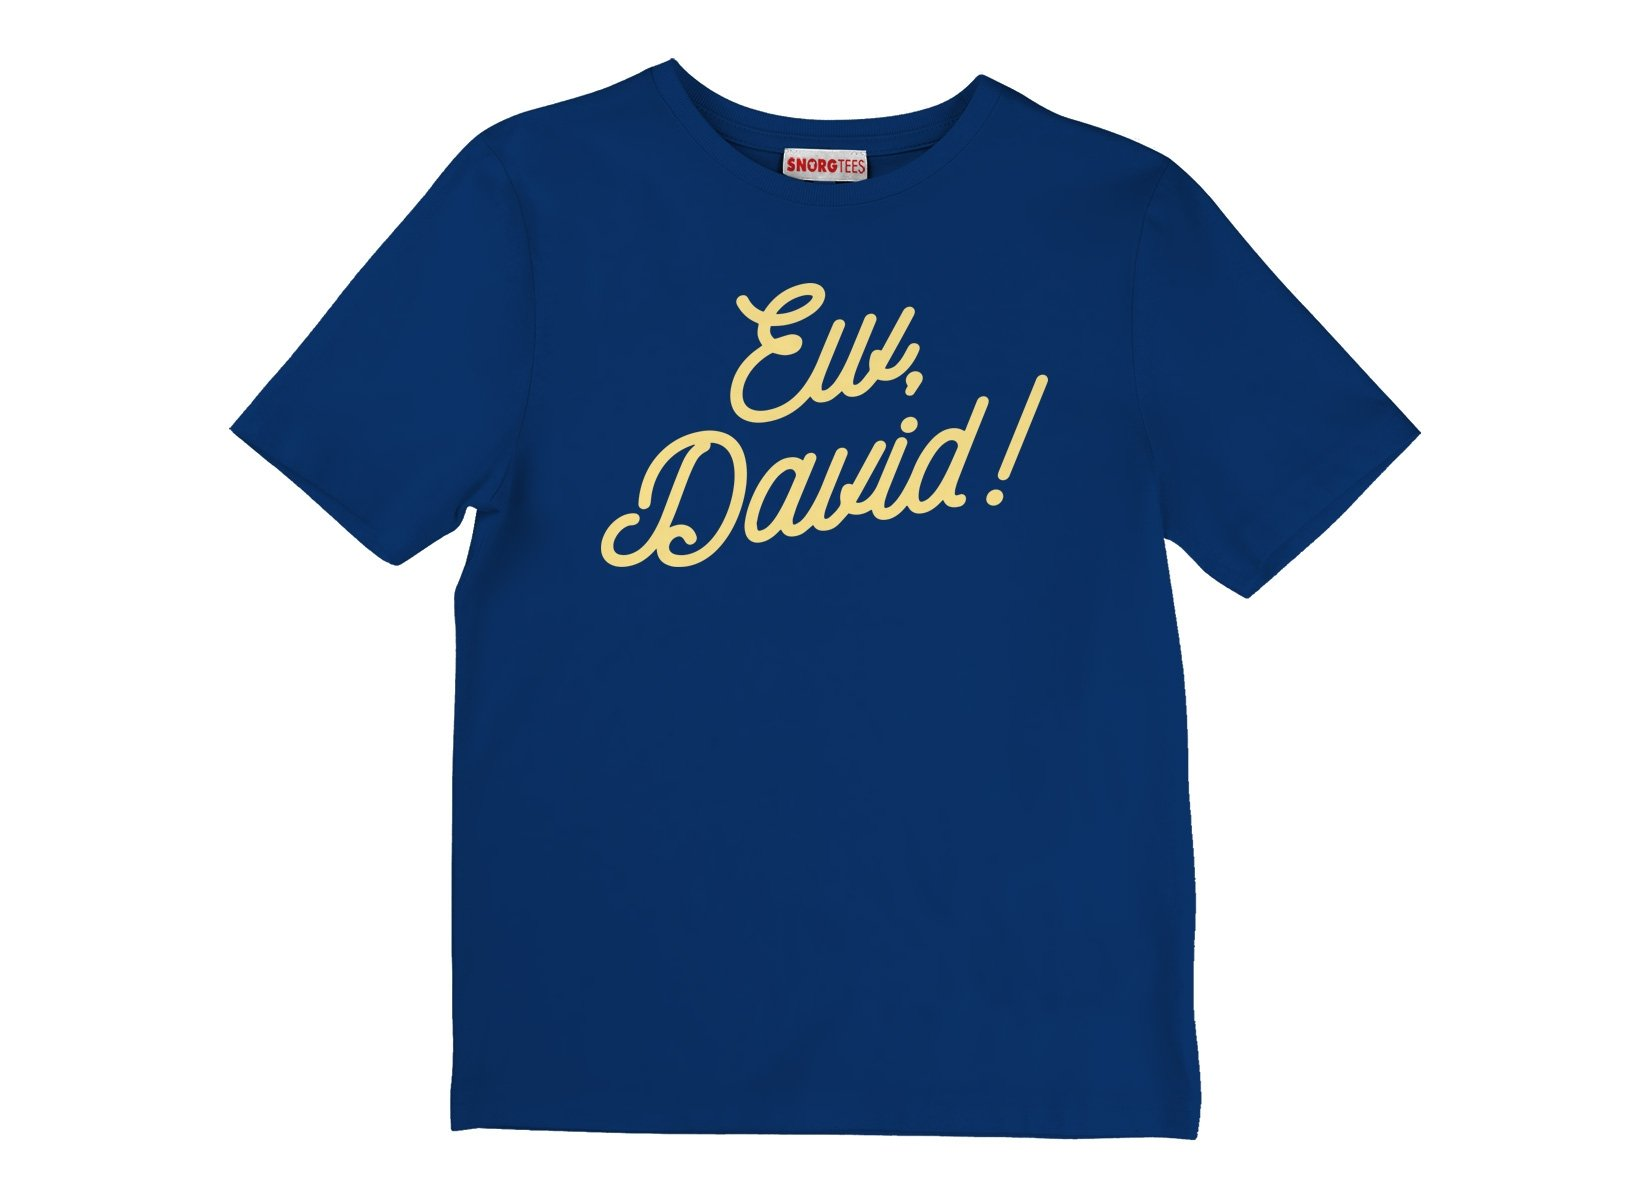 Ew, David! on Kids T-Shirt